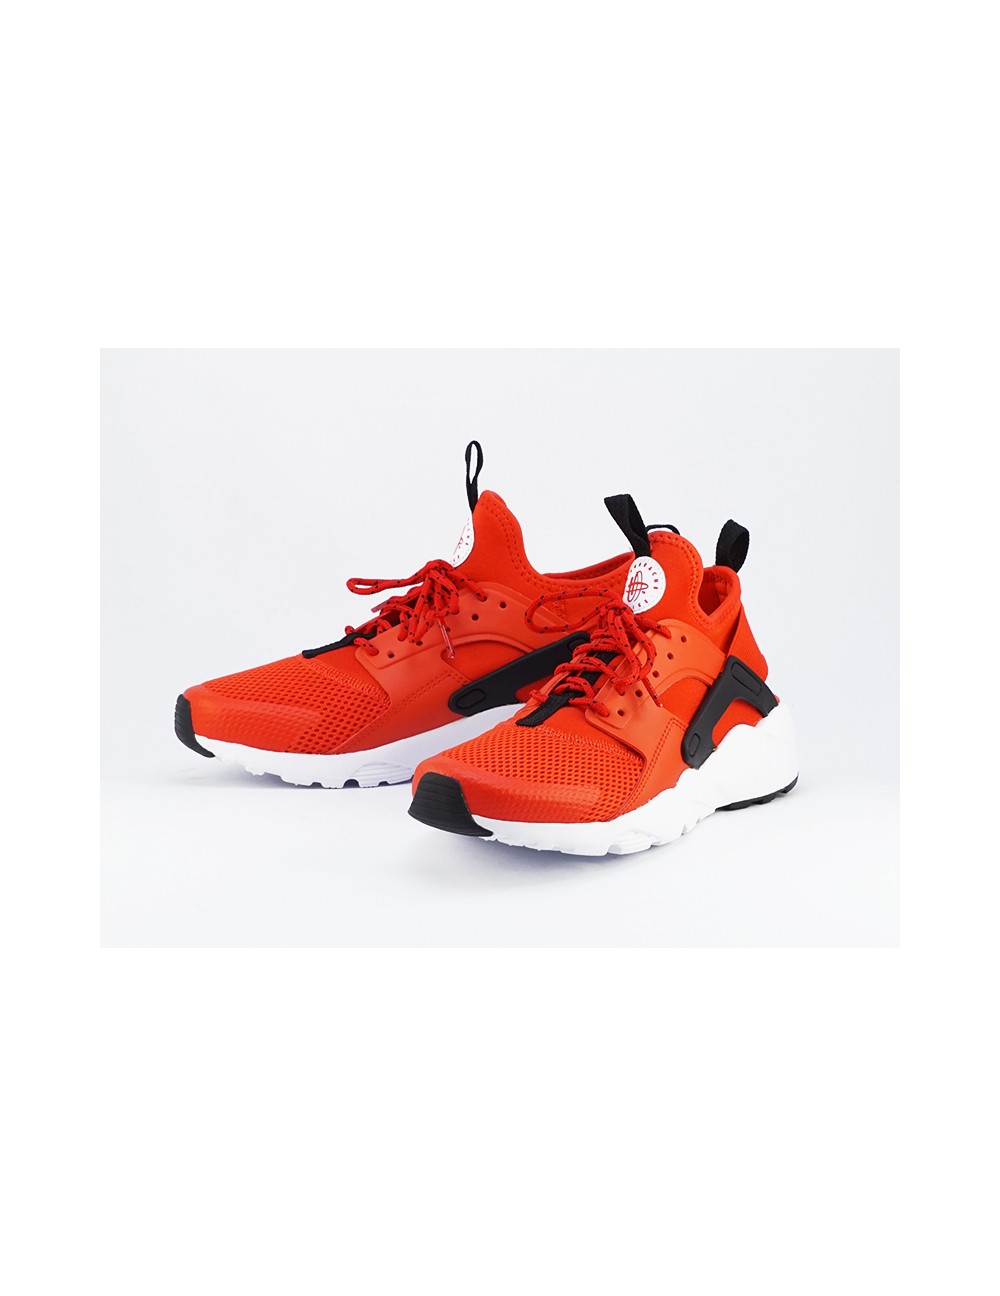 NIKE AIR HUARACHE RUN ULTRA GS